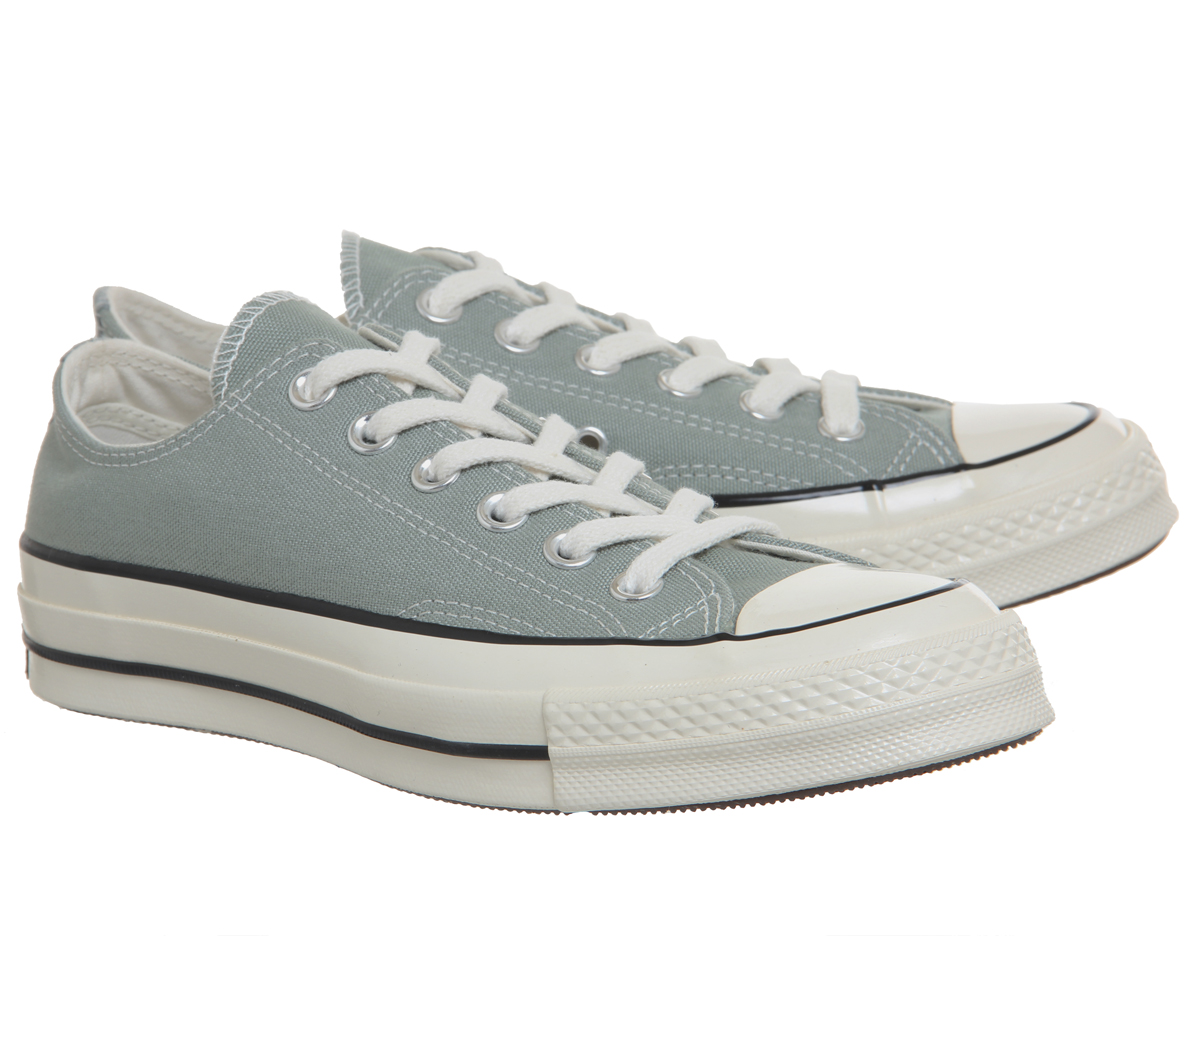 e64e21aac09 Converse All Star Ox 70 Trainers Mica Green Black Egret Trainers ...